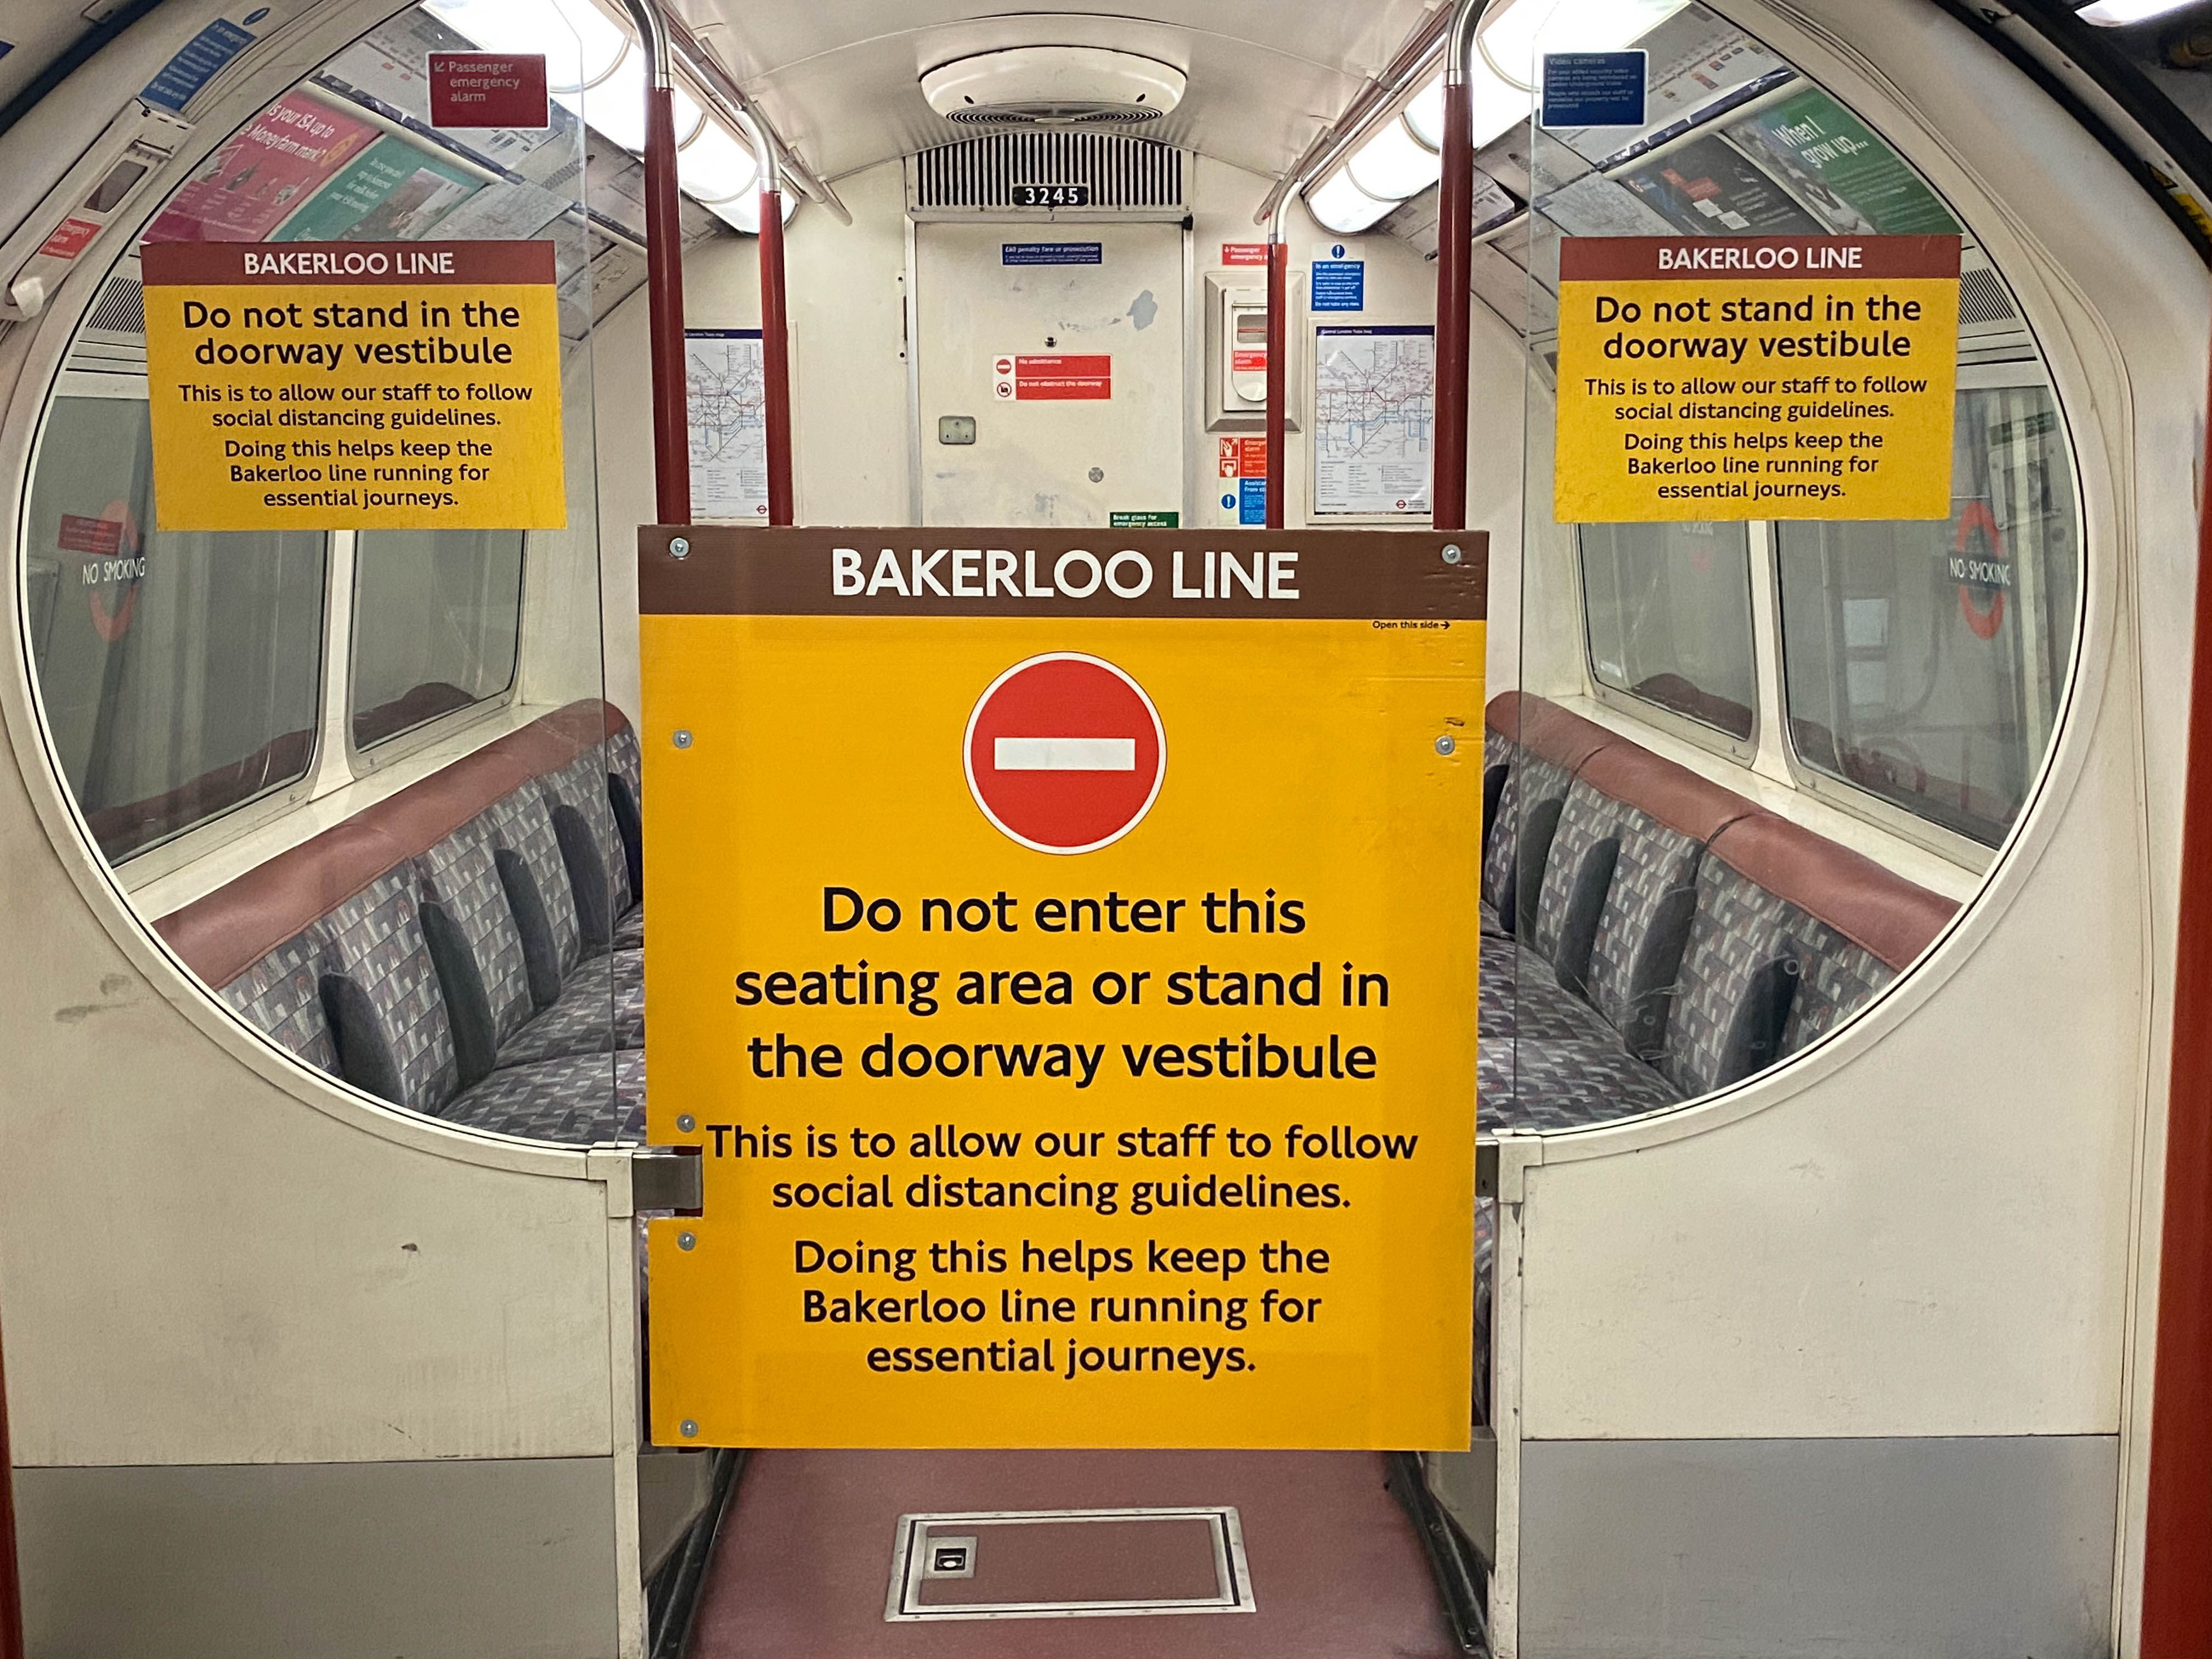 LONDON, ENGLAND - MAY 24: Social Distancing measures are seen on a Bakerloo line tube train on May 24 2020 in London, England. The prime minister announced the general contours of a phased exit from the current lockdown, adopted nearly two months ago in an effort curb the spread of Covid-19.  (Photo by Peter Summers/Getty Images)